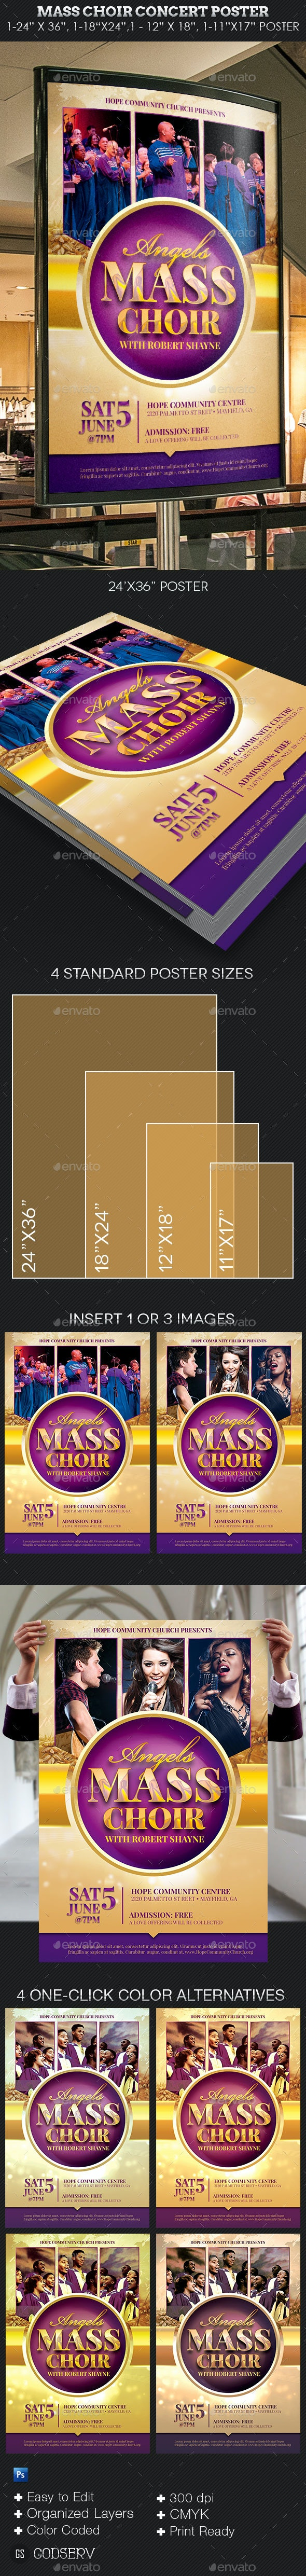 Mass Choir Concert Poster Template - Signage Print Templates